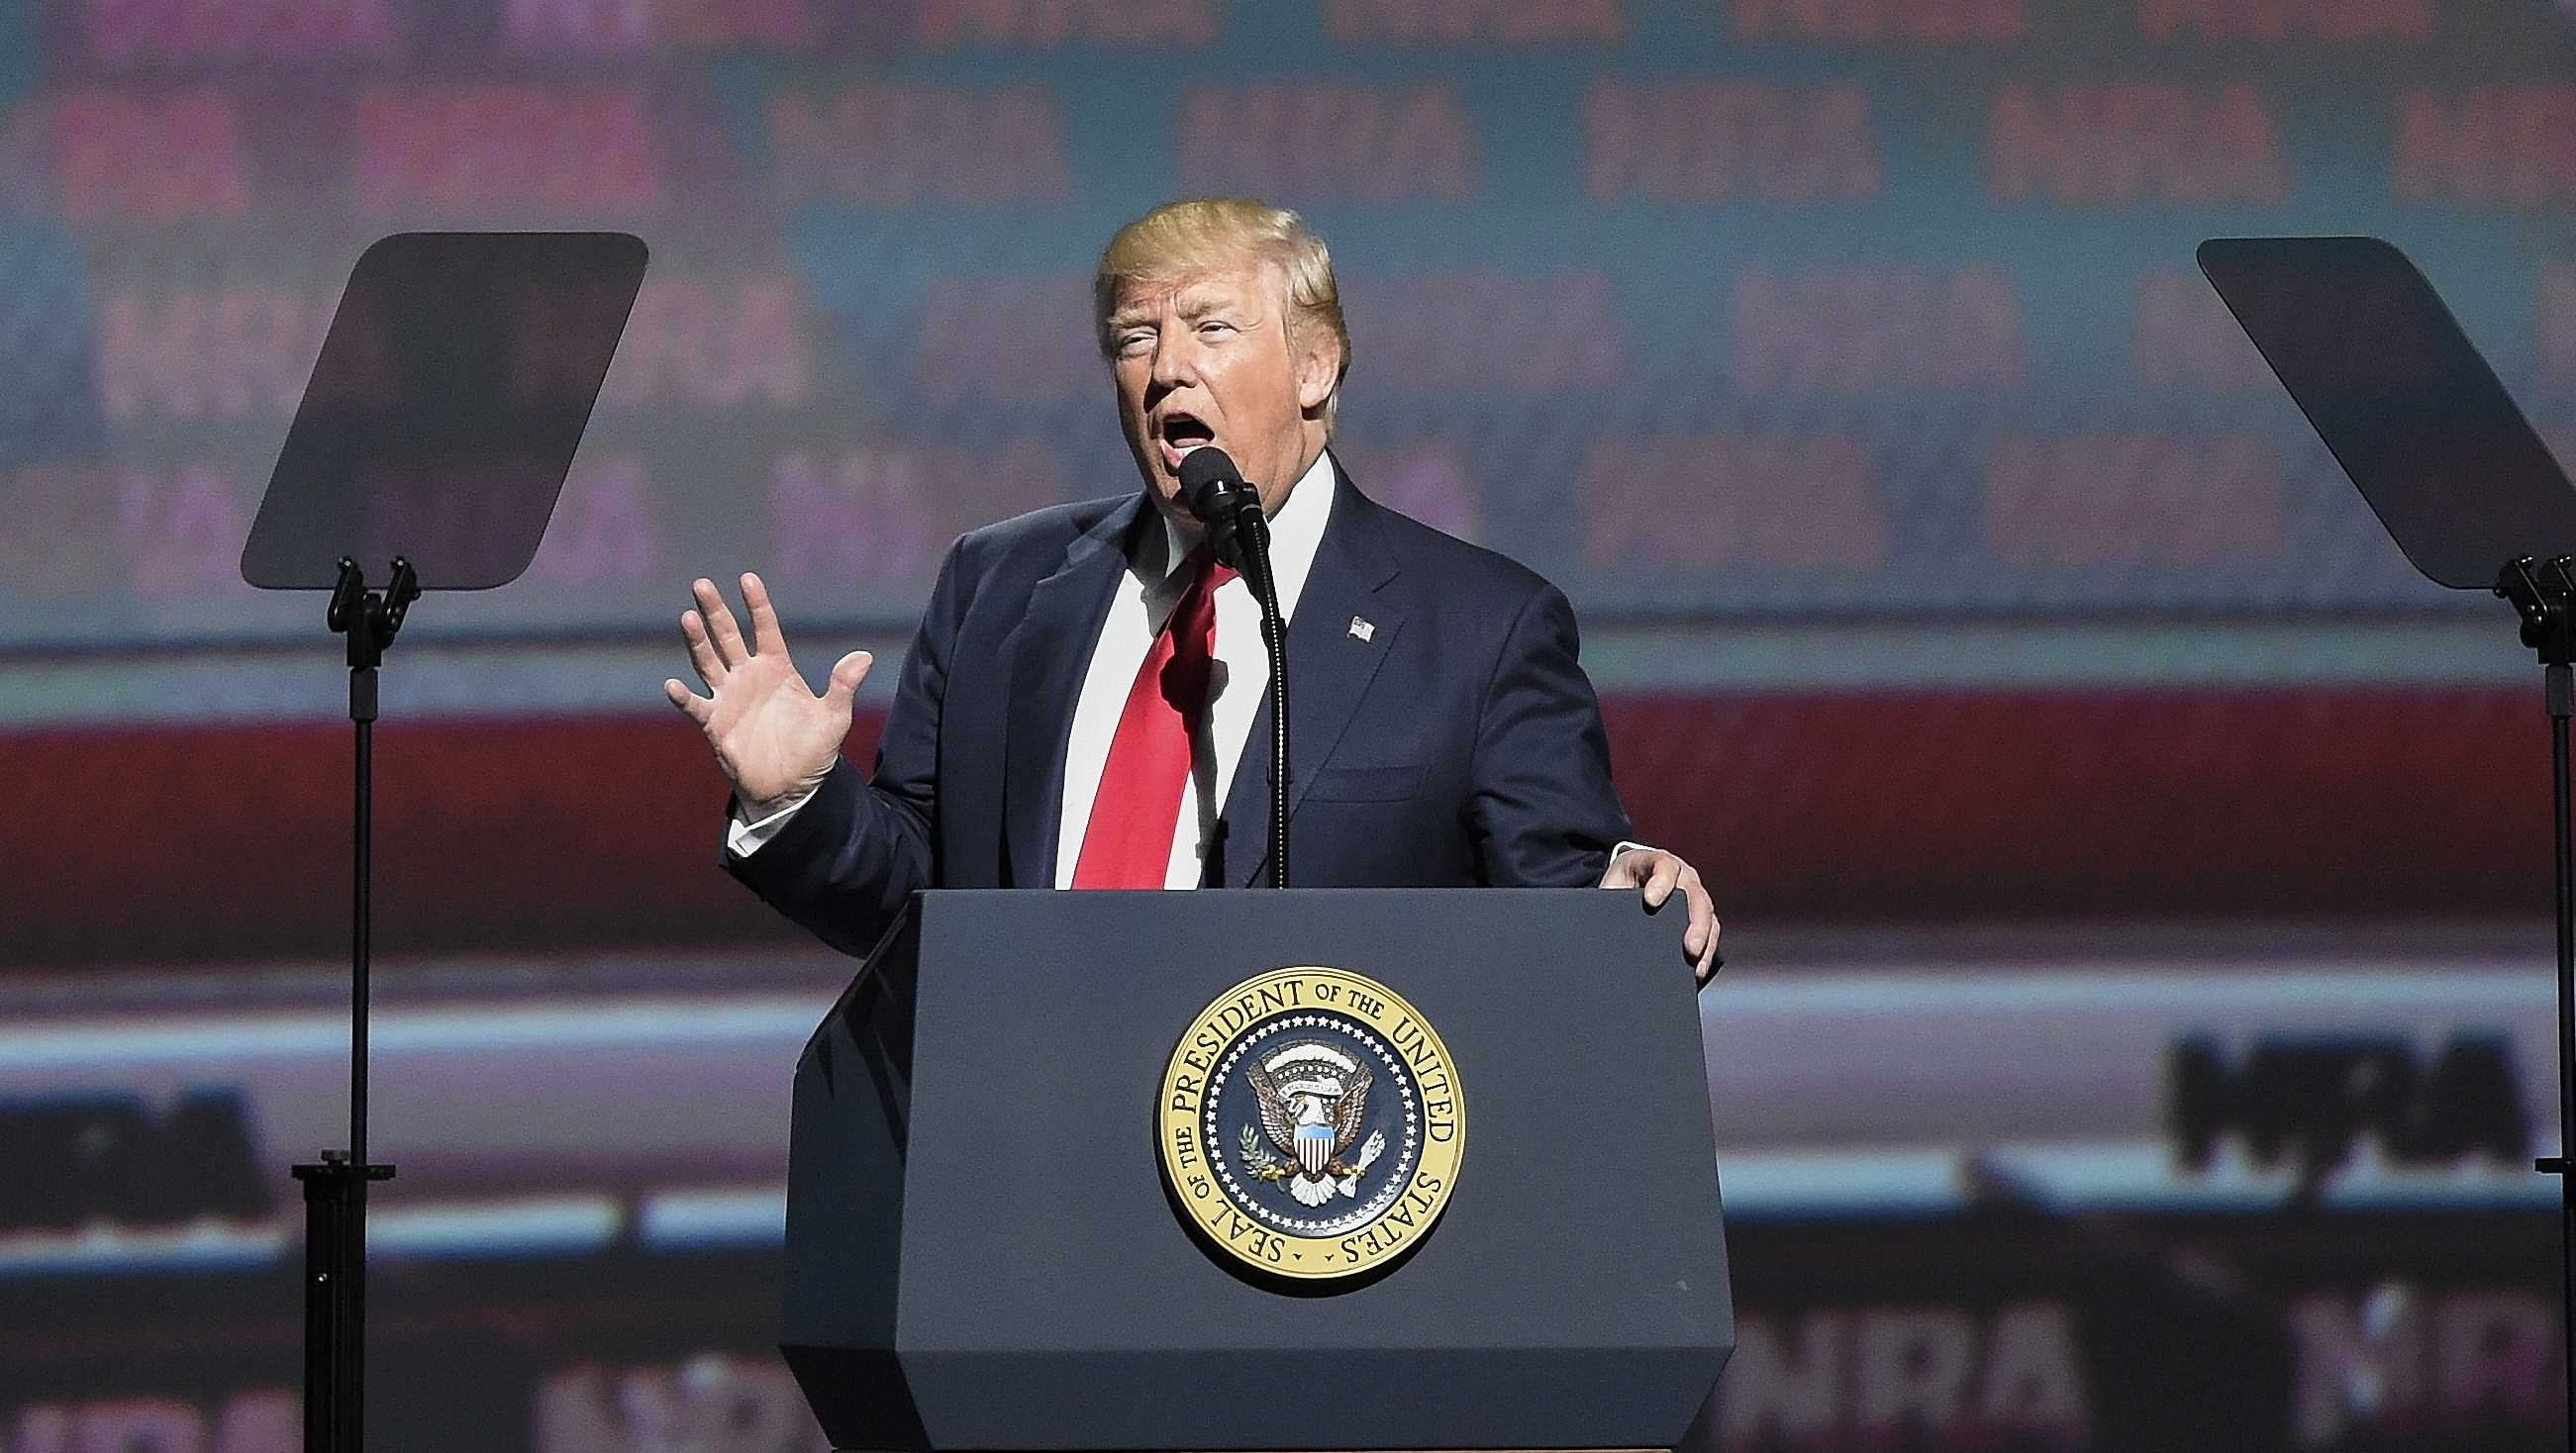 President Donald Trump speaks during the National Rifle Association-ILA Leadership Forum, Friday, April 28, 2017, in Atlanta.